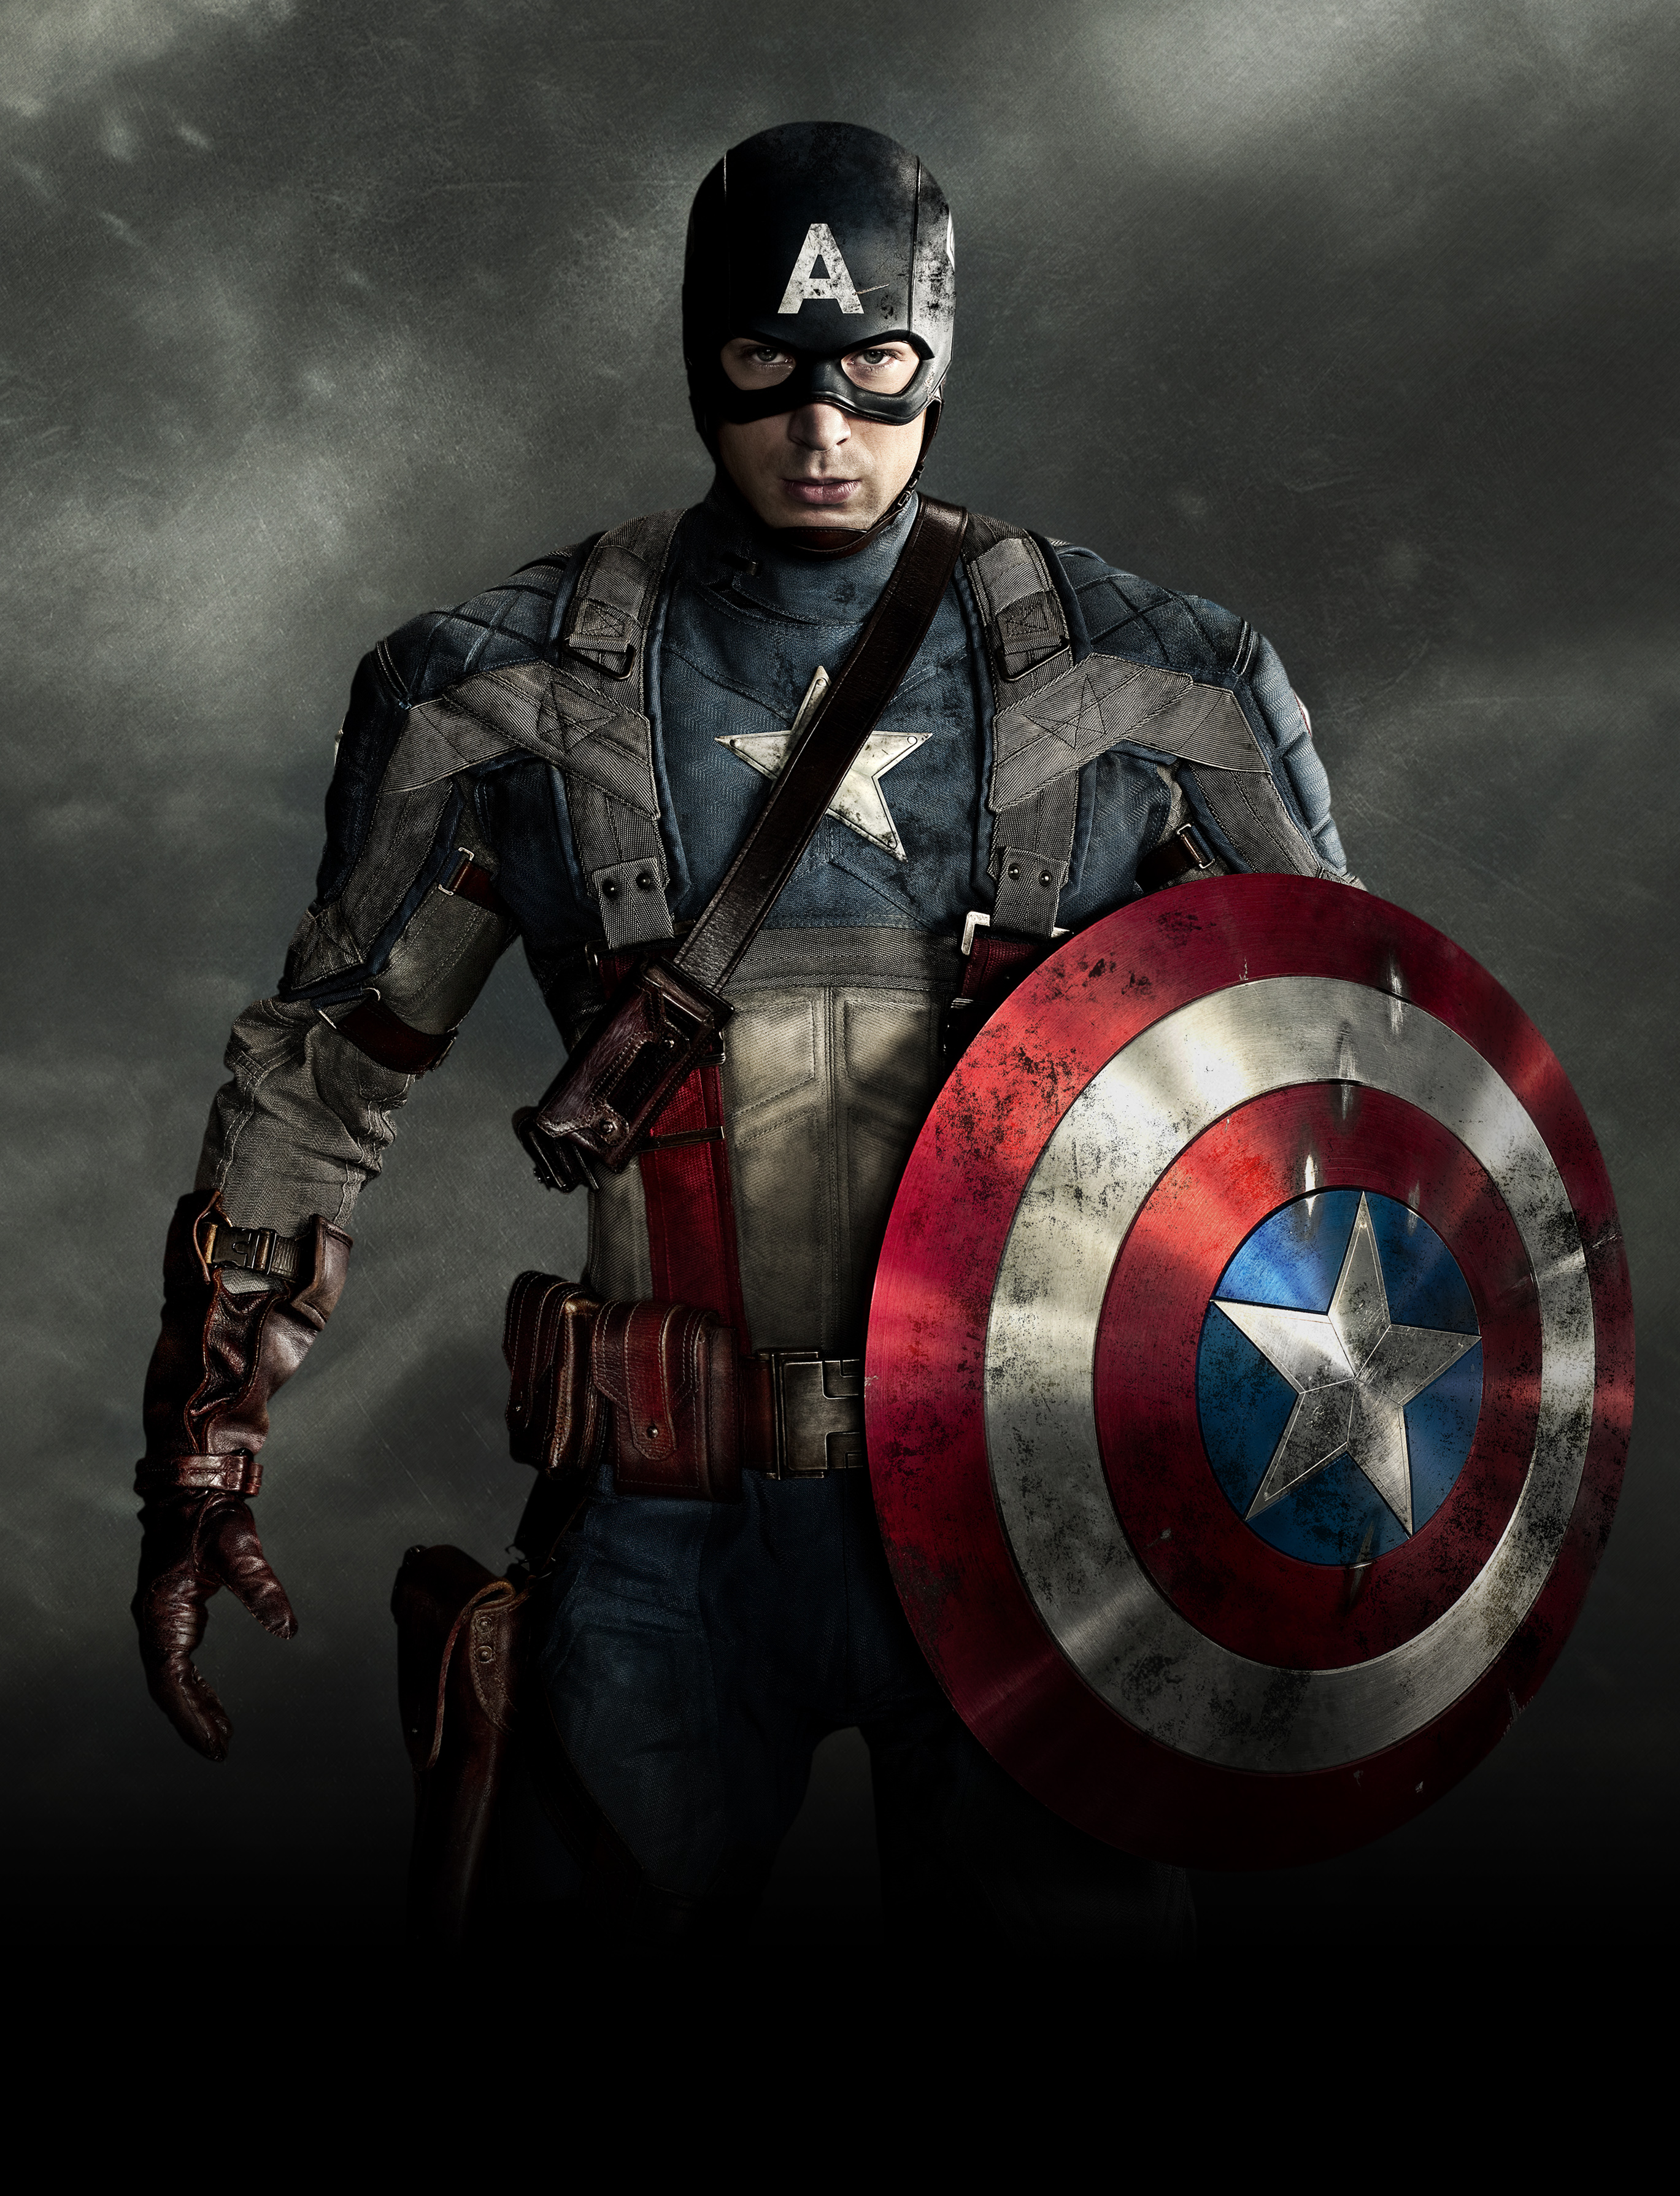 6 Life Lessons Captain America The Winter Soldier Taught Me